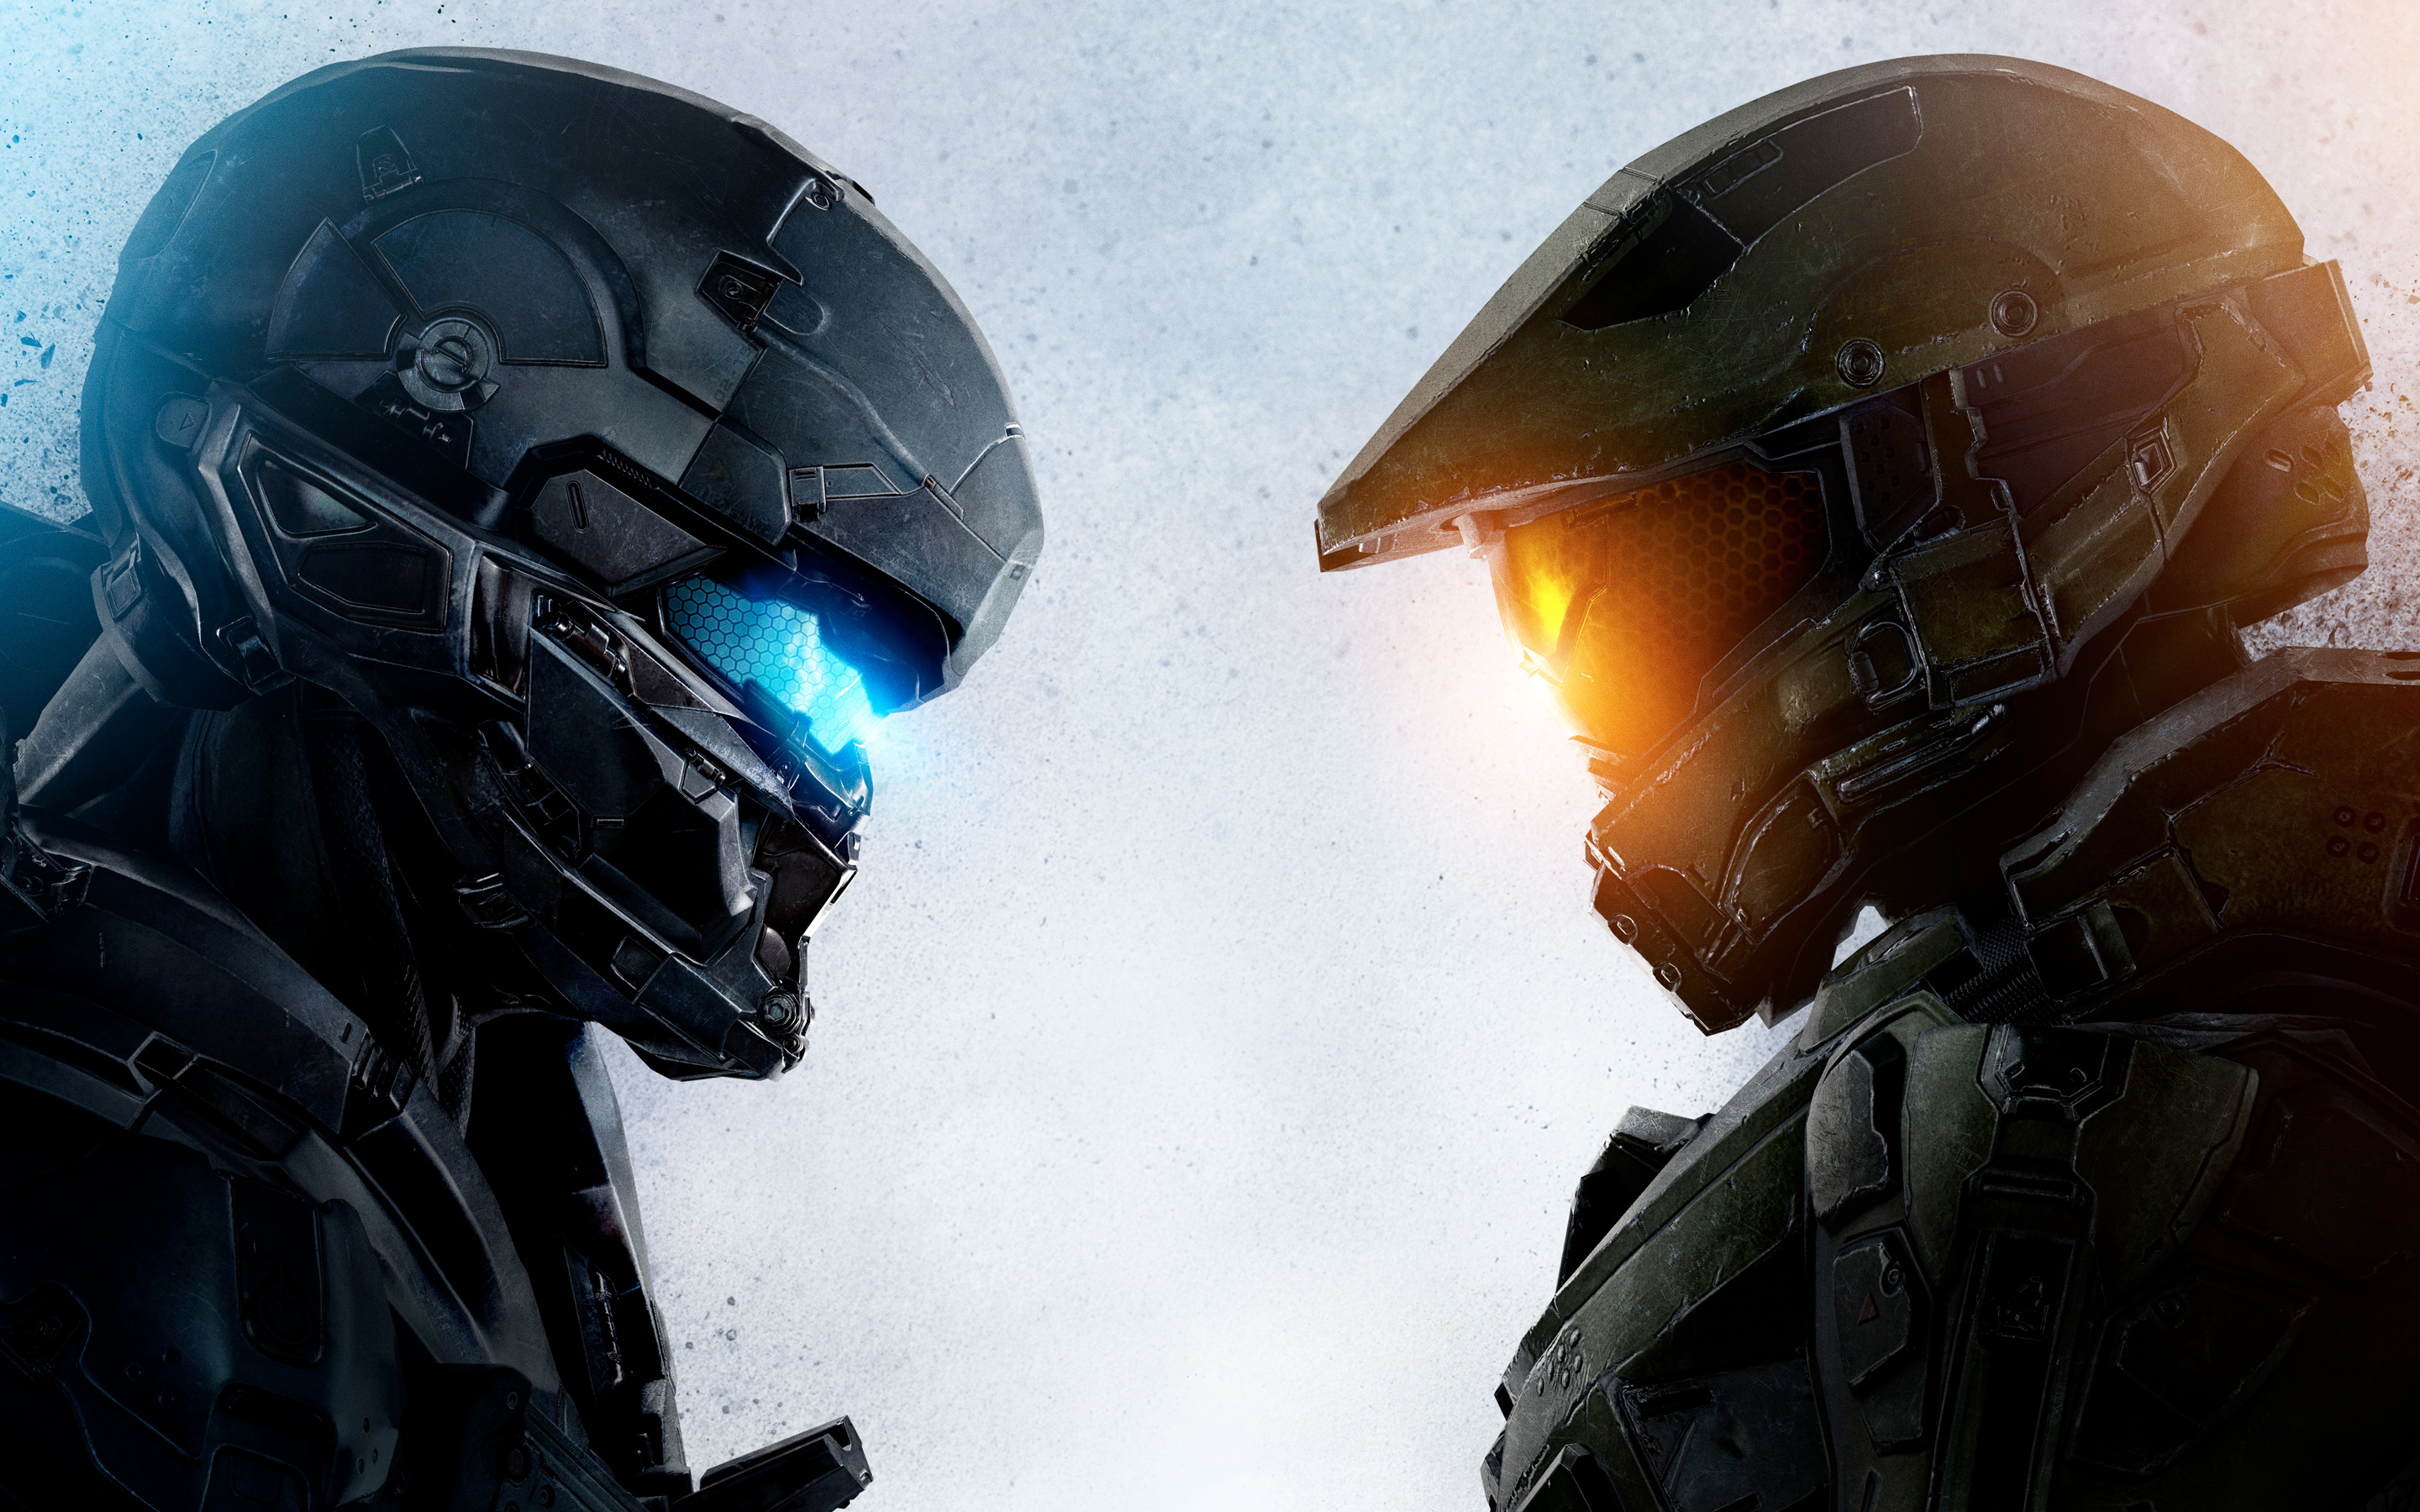 Fall Out 4 Hd Wallpapers Halo 5 Hd Wallpapers For Desktop Download